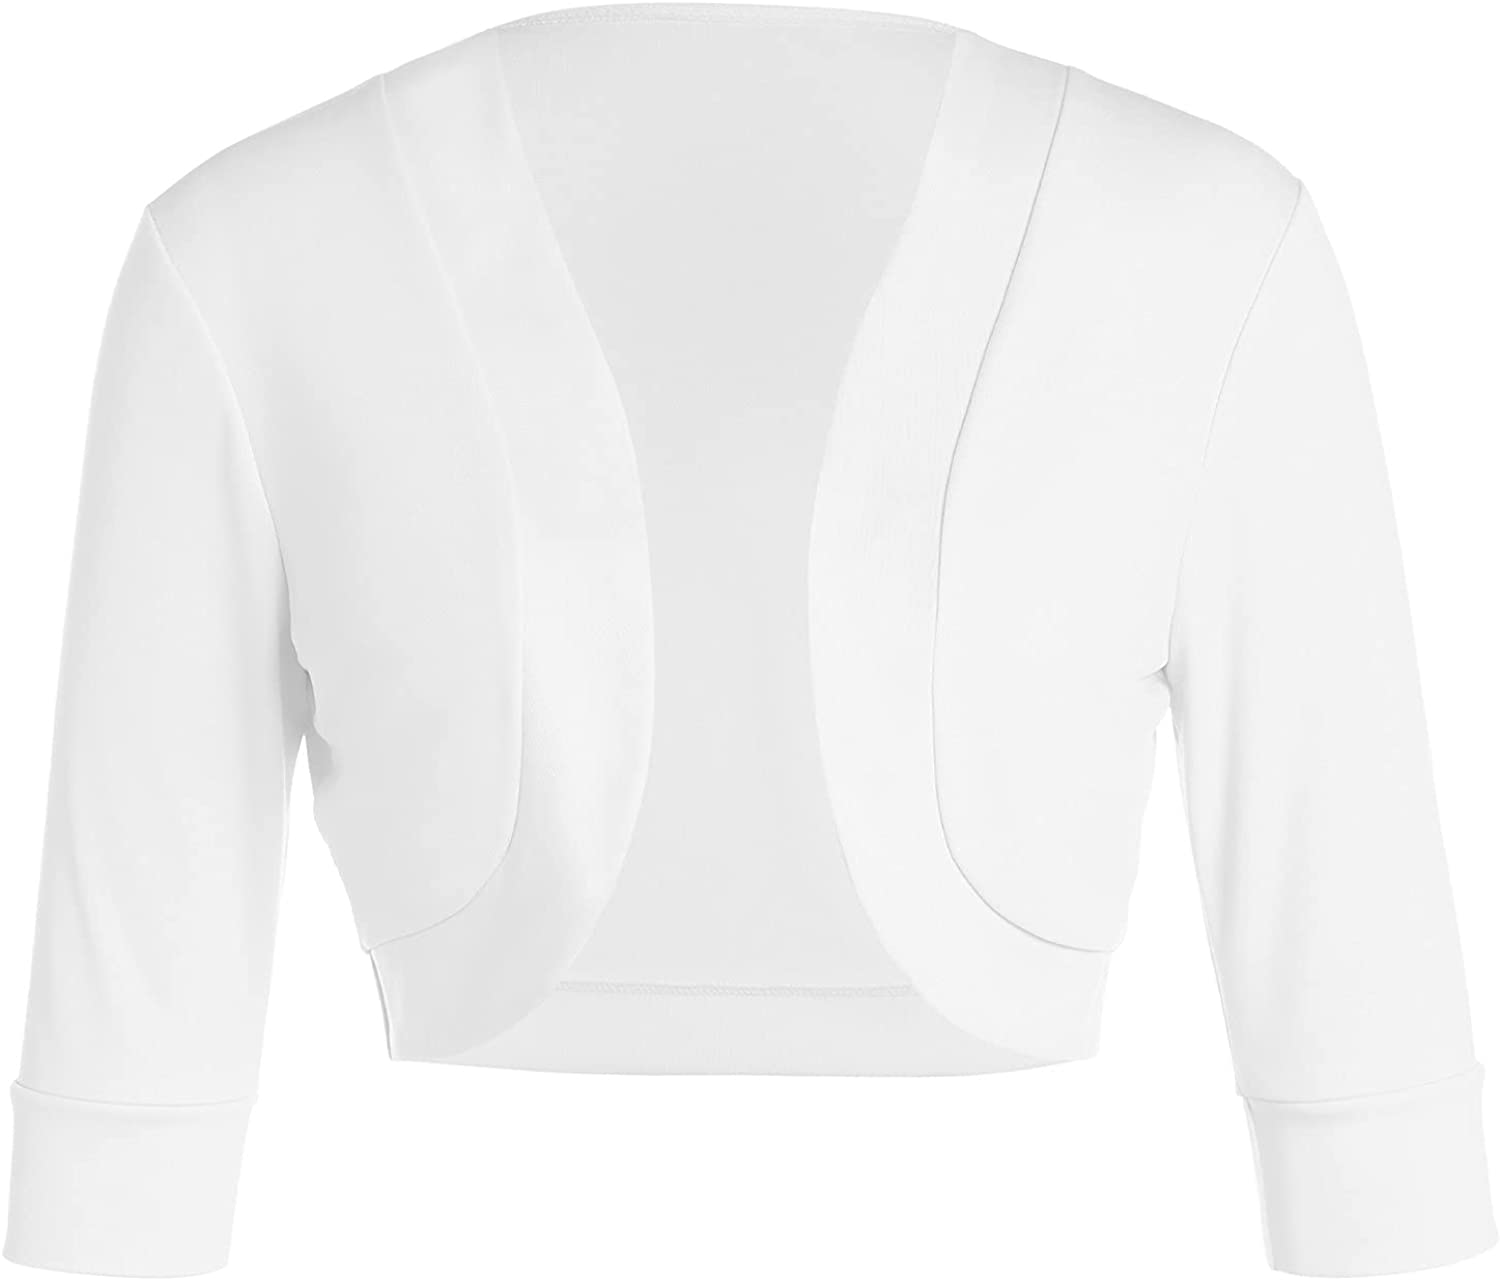 Women's Bolero Cardigans Plus Size Casual Solid Open Front Short Shrugs Cropped Sweaters Jackets Blouses